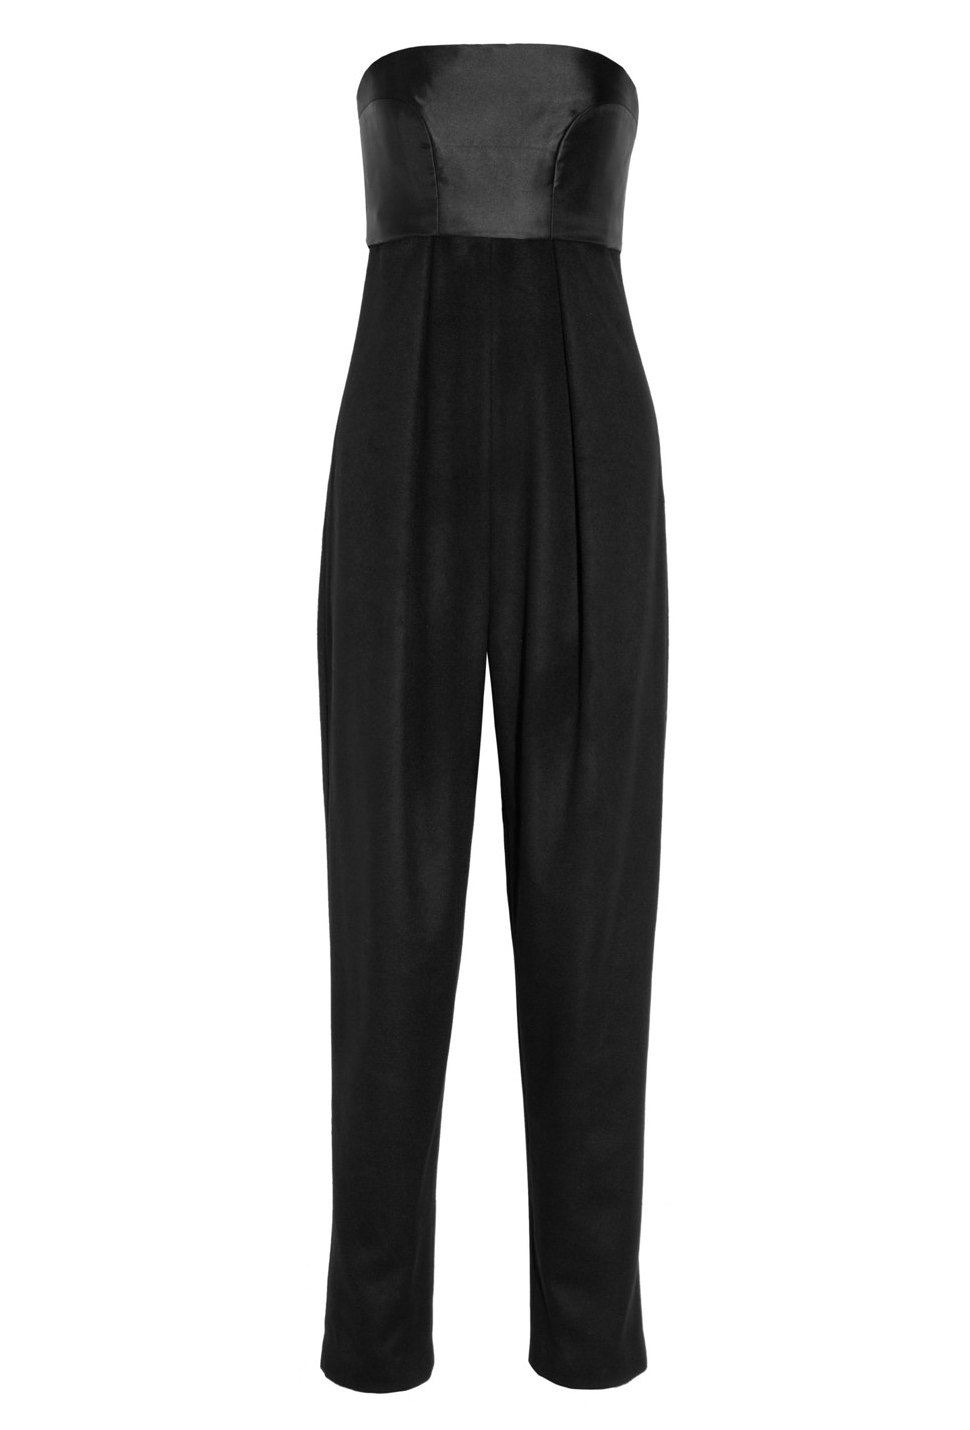 The Row Topa Silk-satin And Cashmere Jumpsuit - was $4190.0, now $1257.0 (70% Off). Picked by olga @ Outnet.com